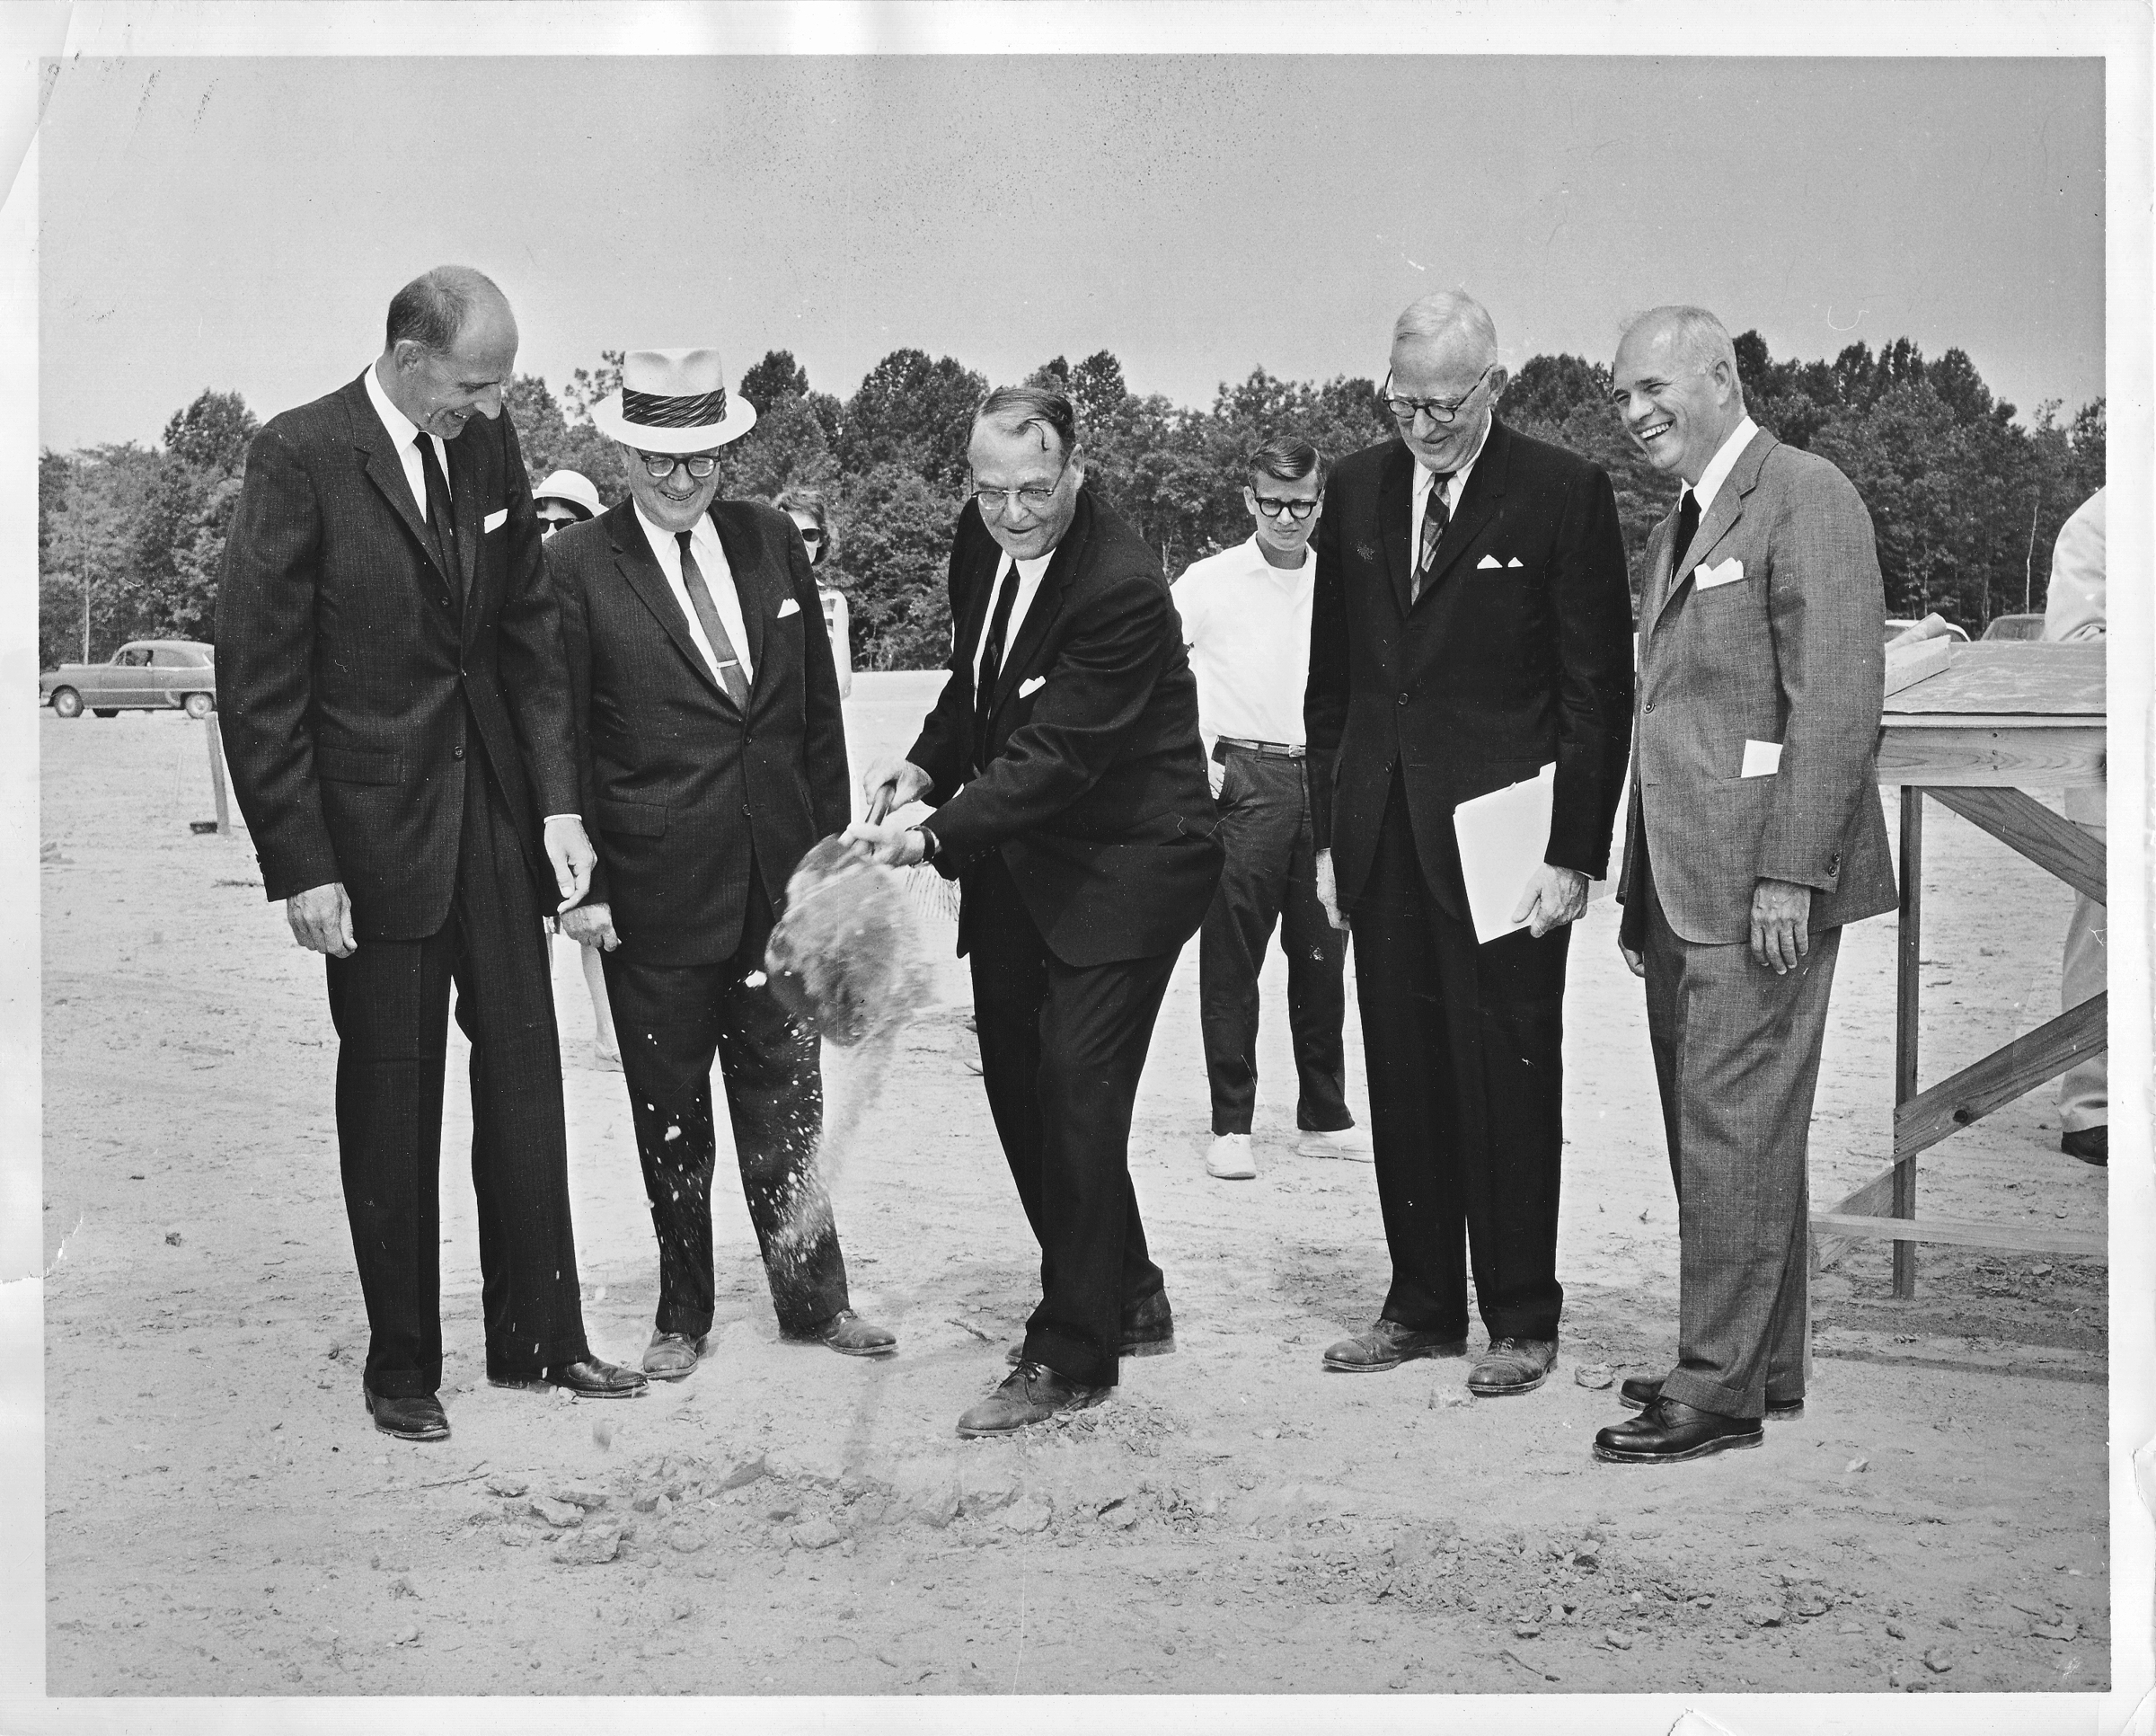 Groundbreaking ceremony for the Fairfax campus, August 1, 1963.